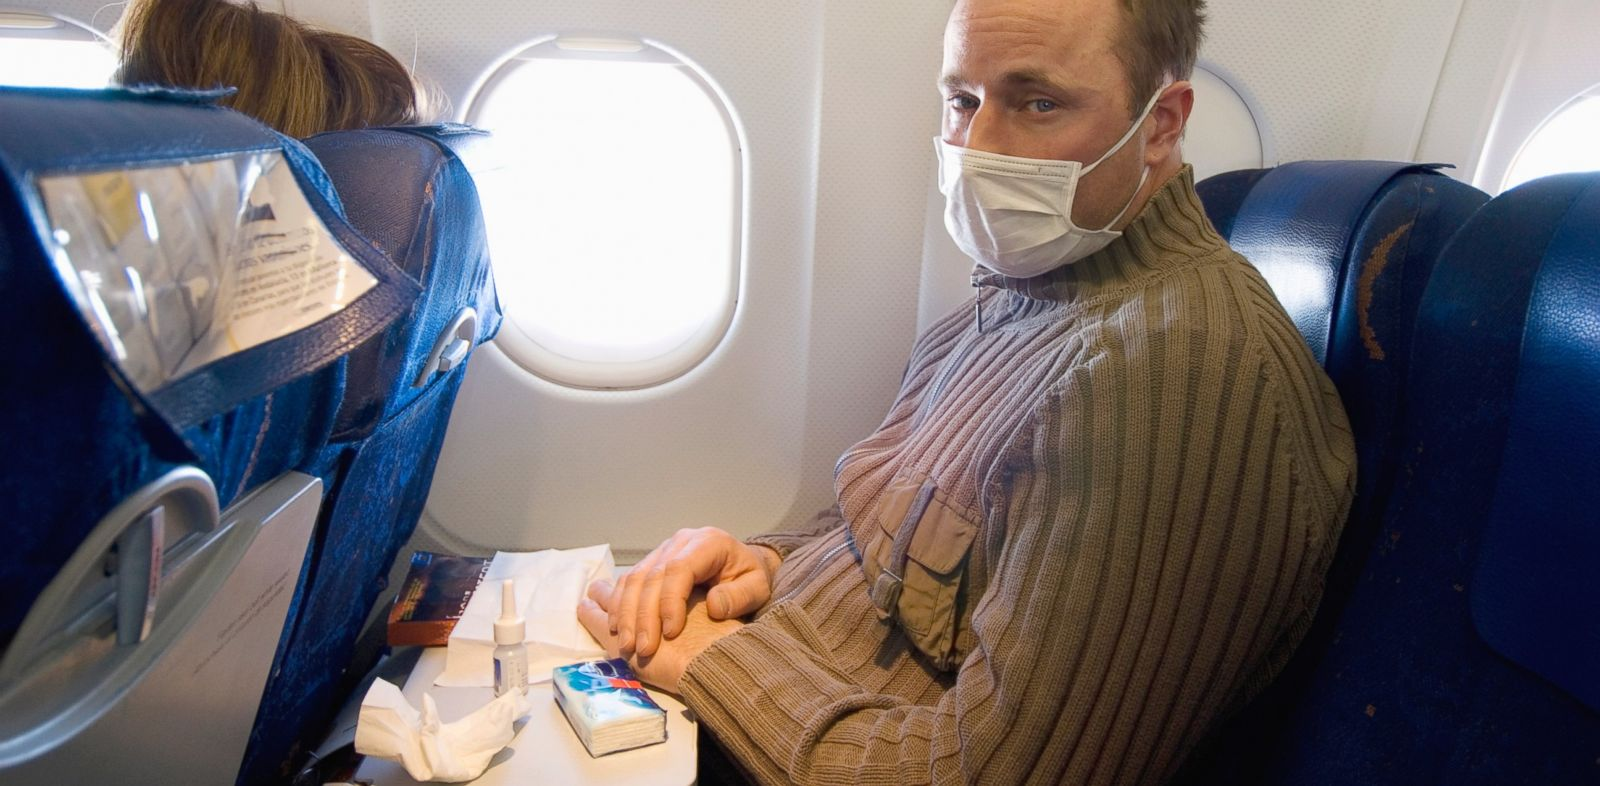 PHOTO: Outside-air mixing replenishes the cabin air constantly, according to Boeing.com. But if youre seated next to a very sick passenger, you may feel inclined to wear a mask.